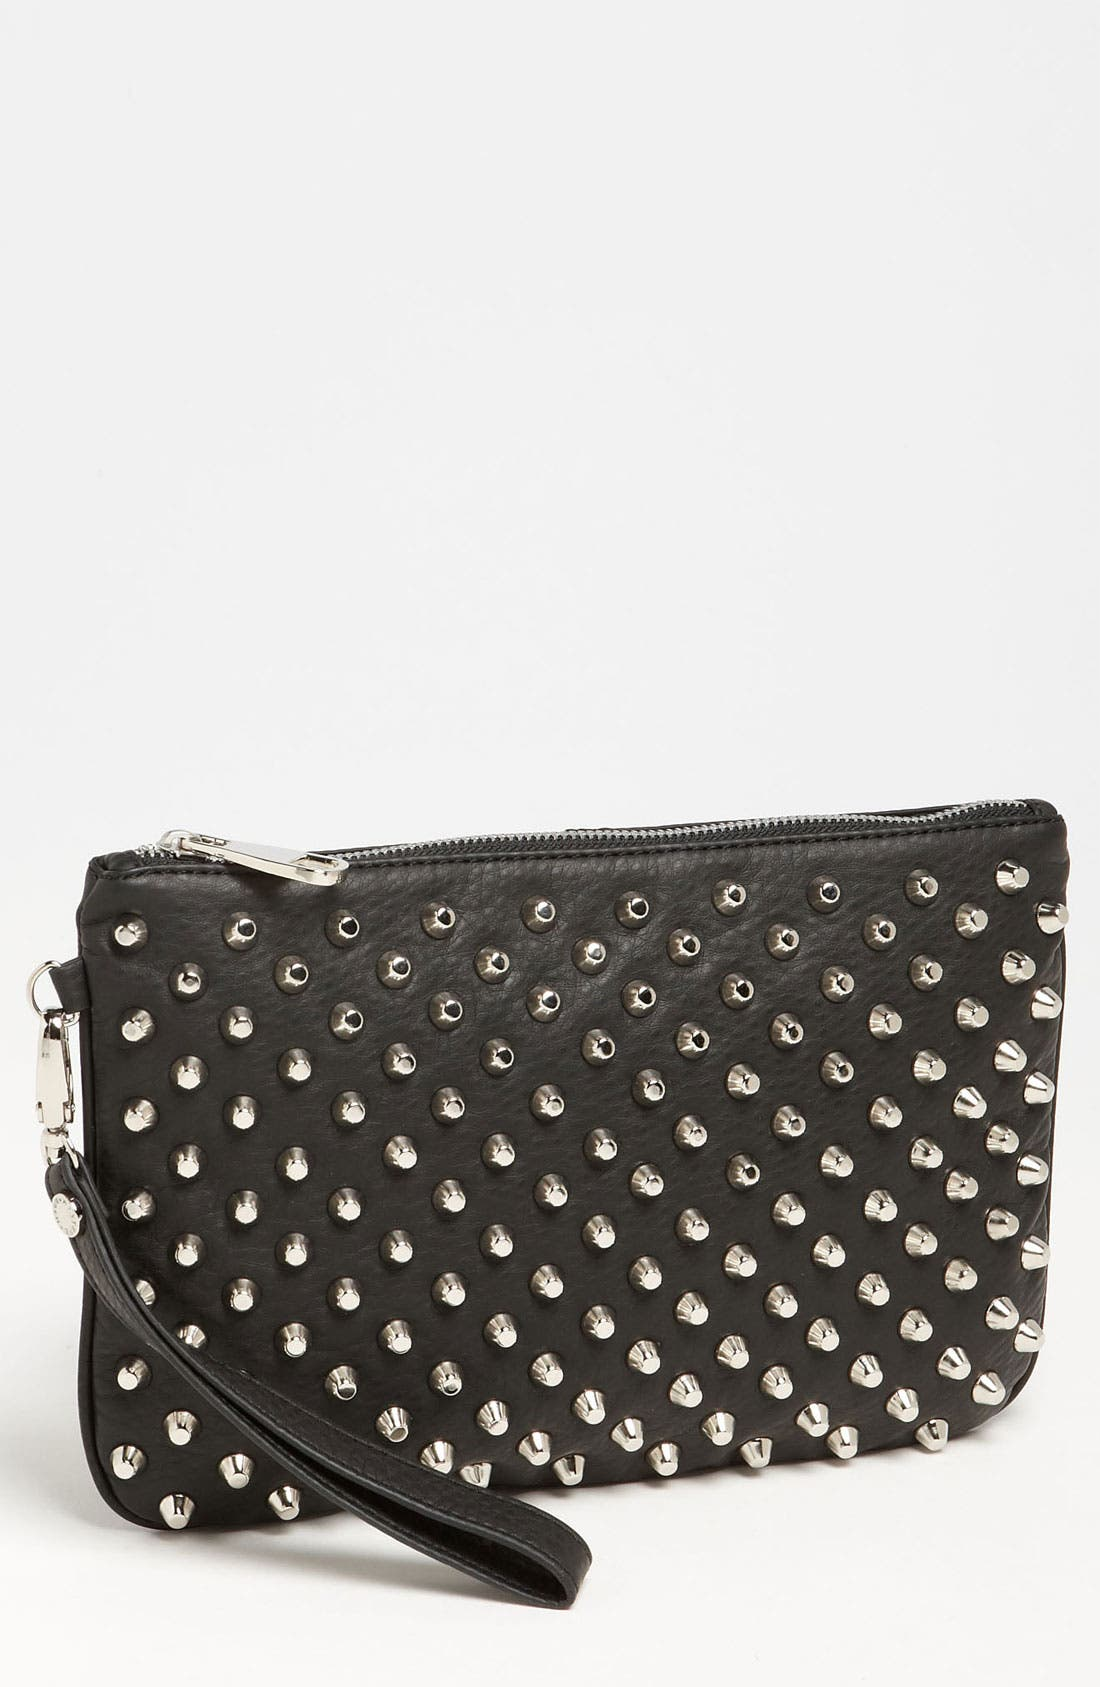 Steve Madden 'Stud Love - Small' Clutch, Main, color, 001